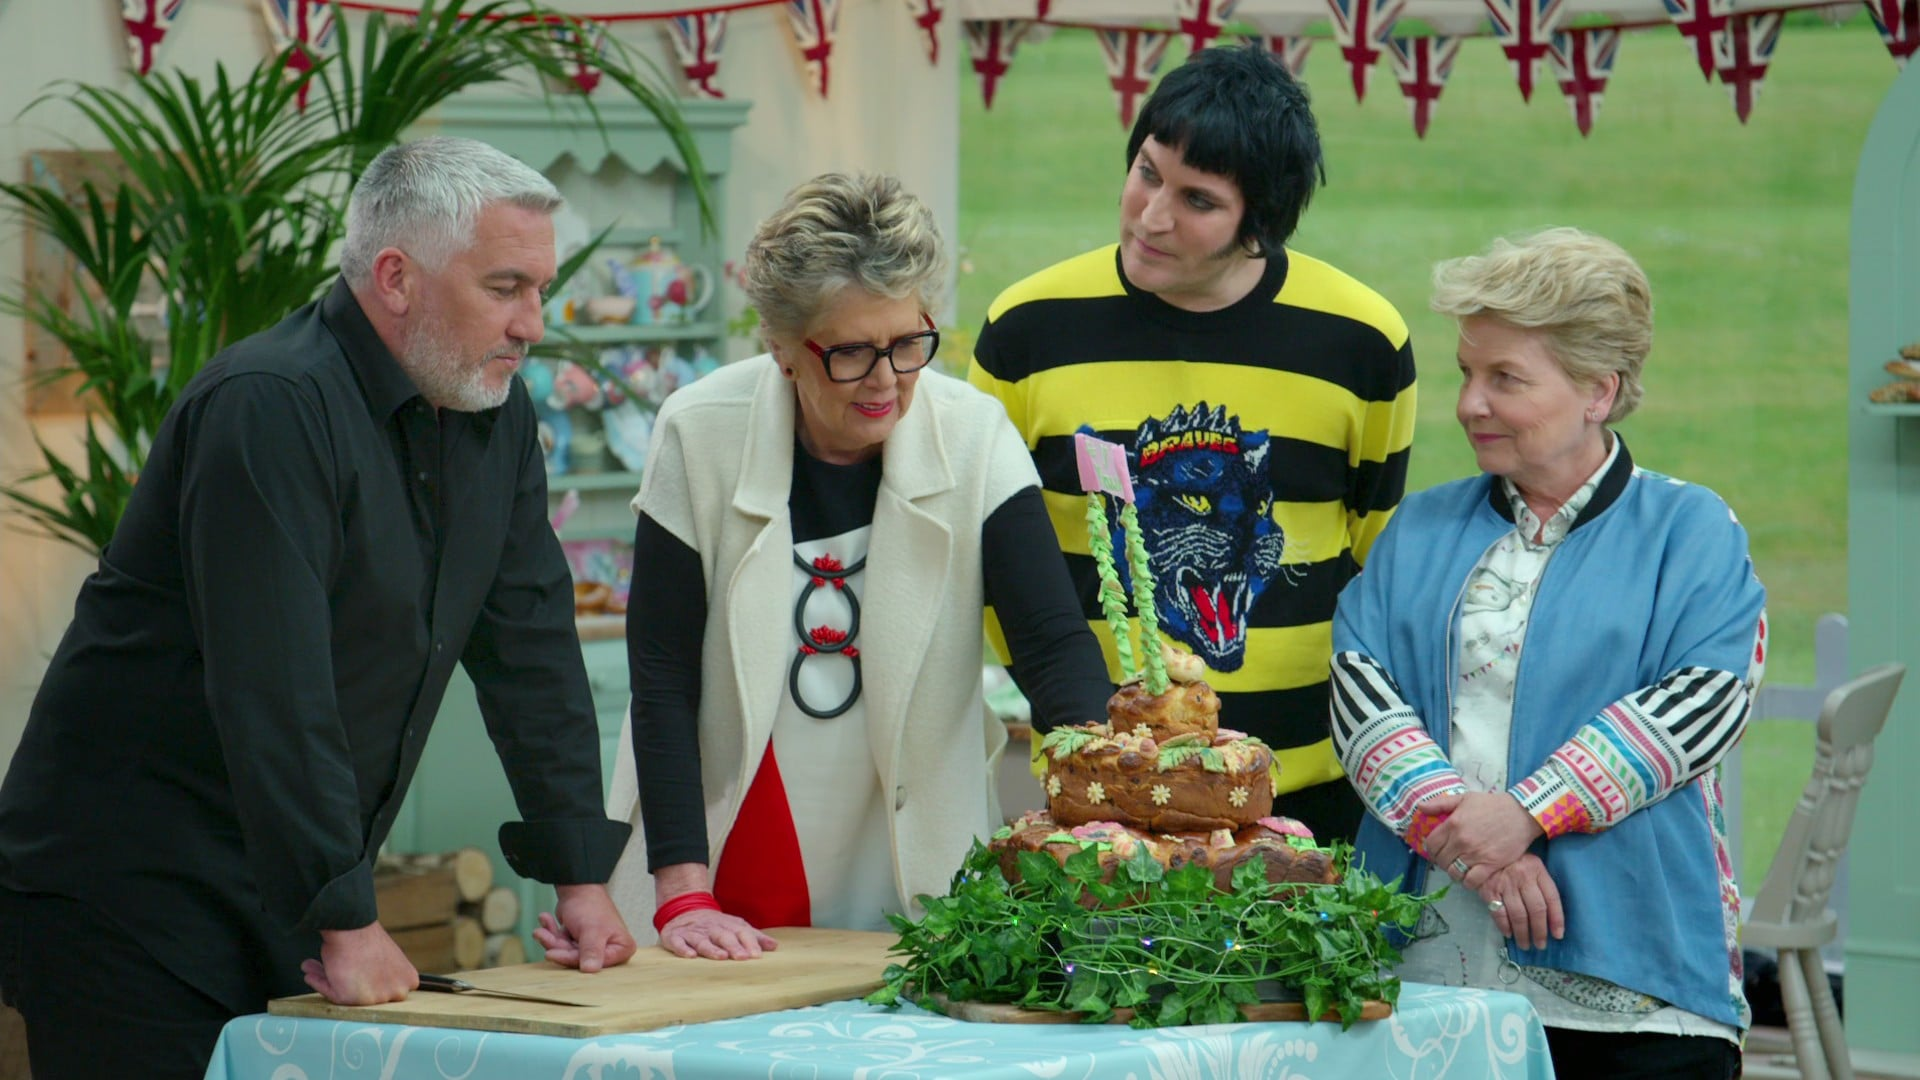 THE GREAT BRITISH BAKE OFF, (aka THE GREAT BRITISH BAKING SHOW), from left: judges Paul Hollywood, Prue Leith, presenters Noel Fielding, Sandi Toksvig, 'Bread', (Season 9, ep. 903, aired in the US on Nov. 9, 2018). photo: Netflix / Courtesy Everett Collection